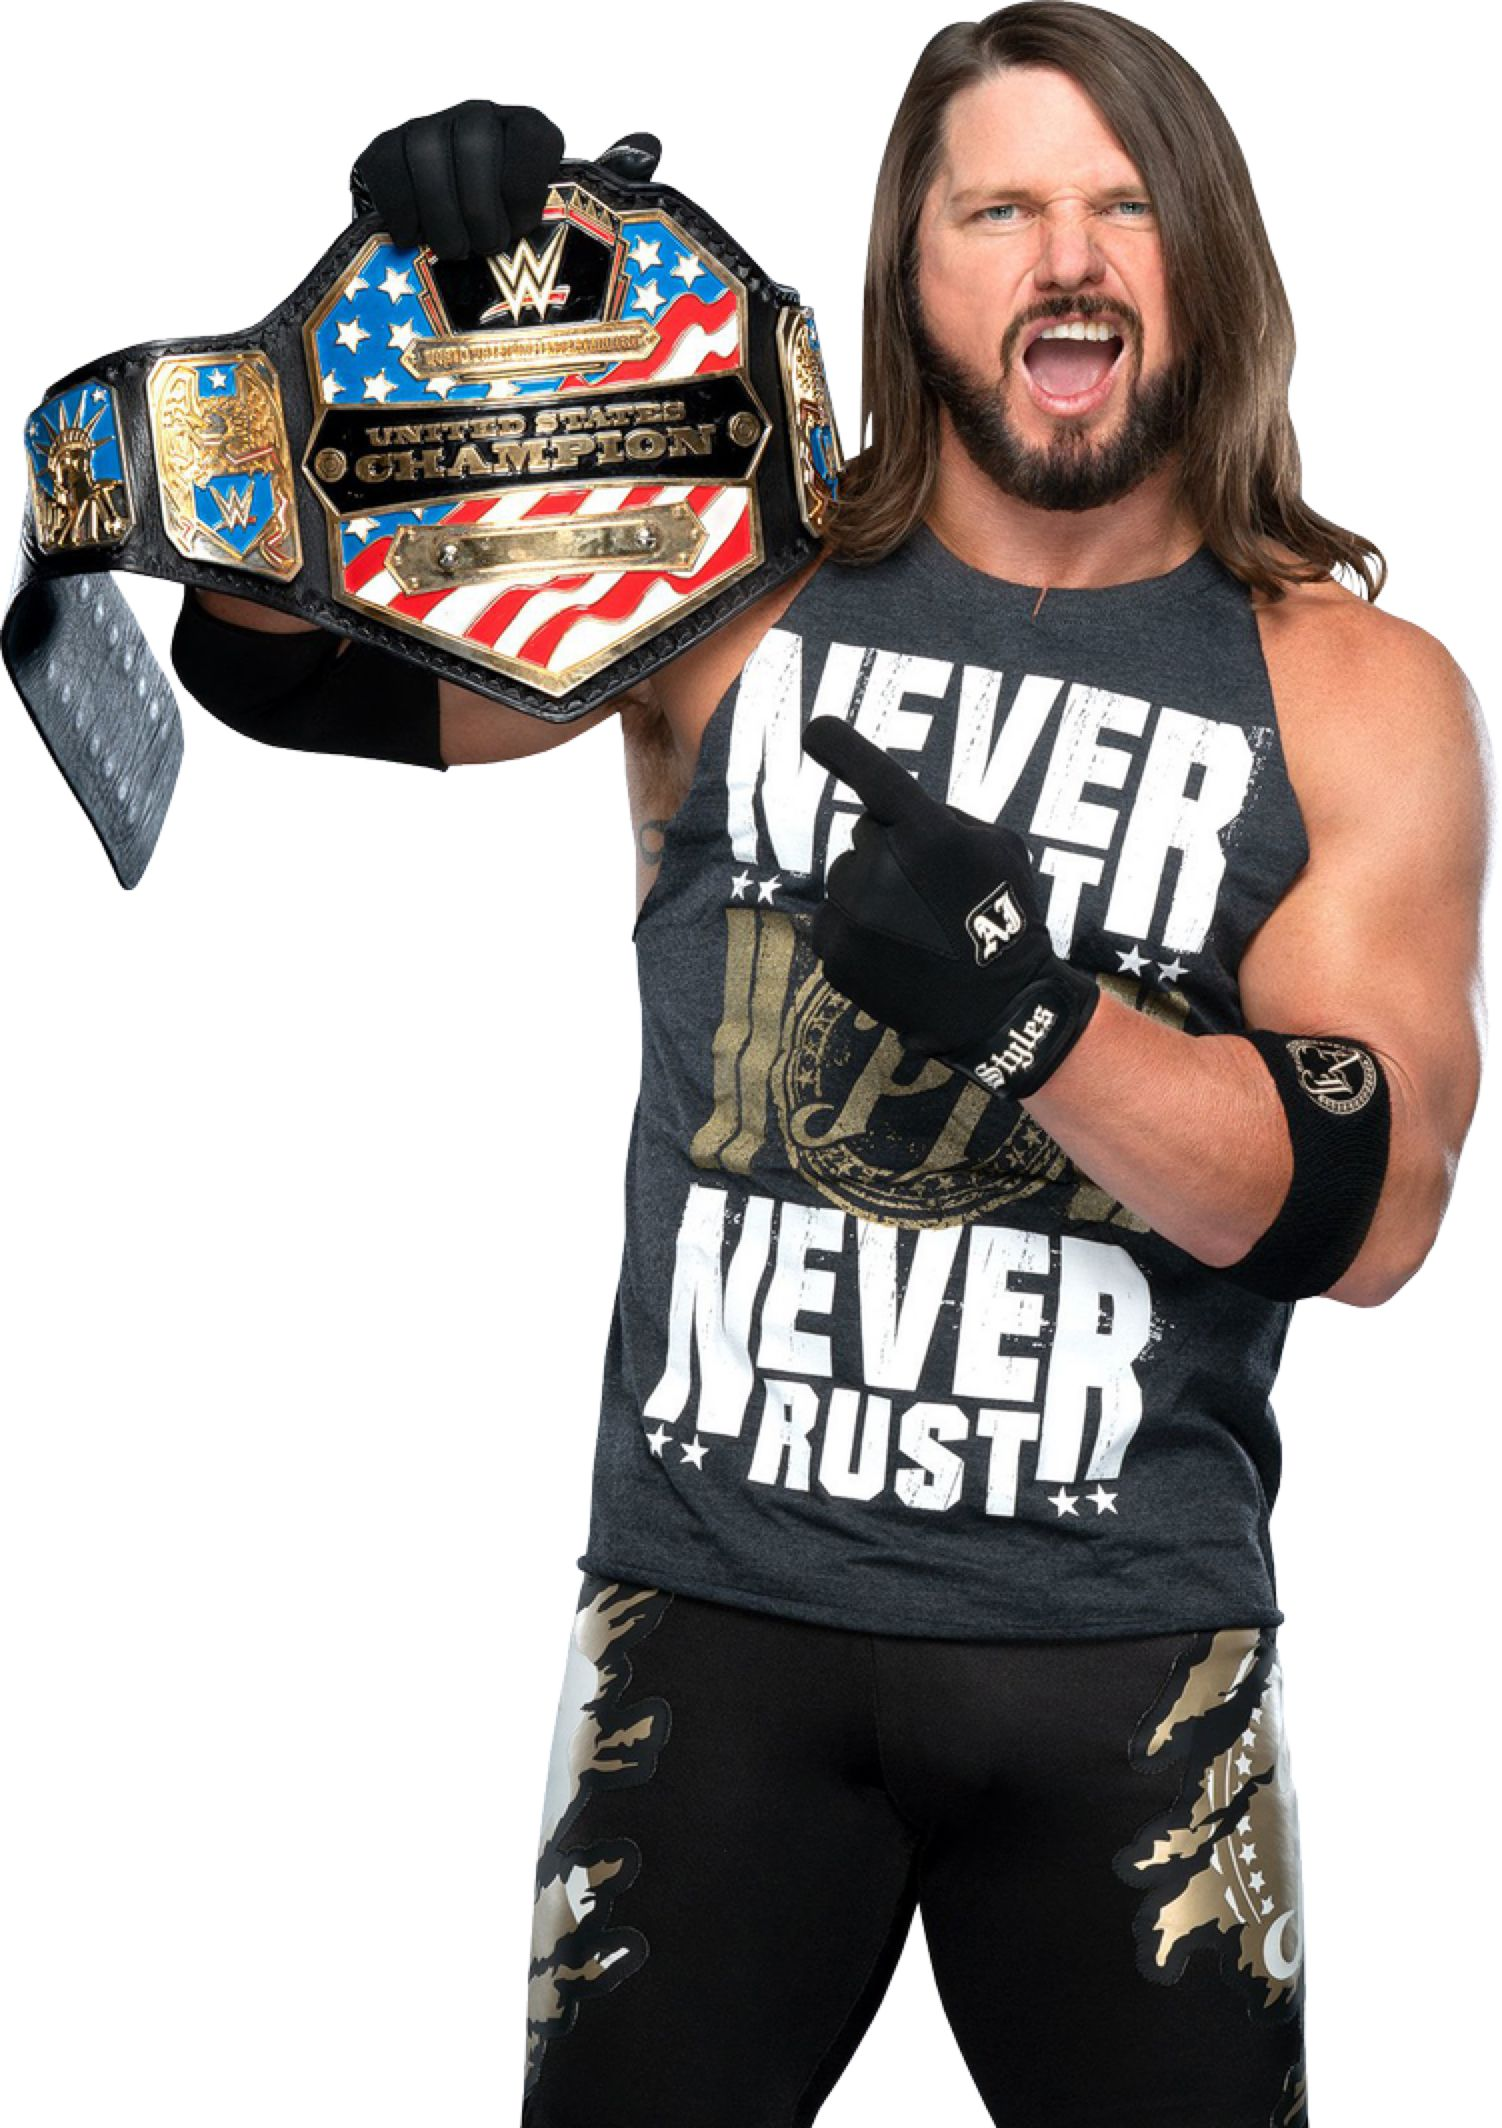 Aj Styles 2019 New Us Champ Png By Ambriegnsasylum16 On Deviantart Aj Styles Champs New Uses